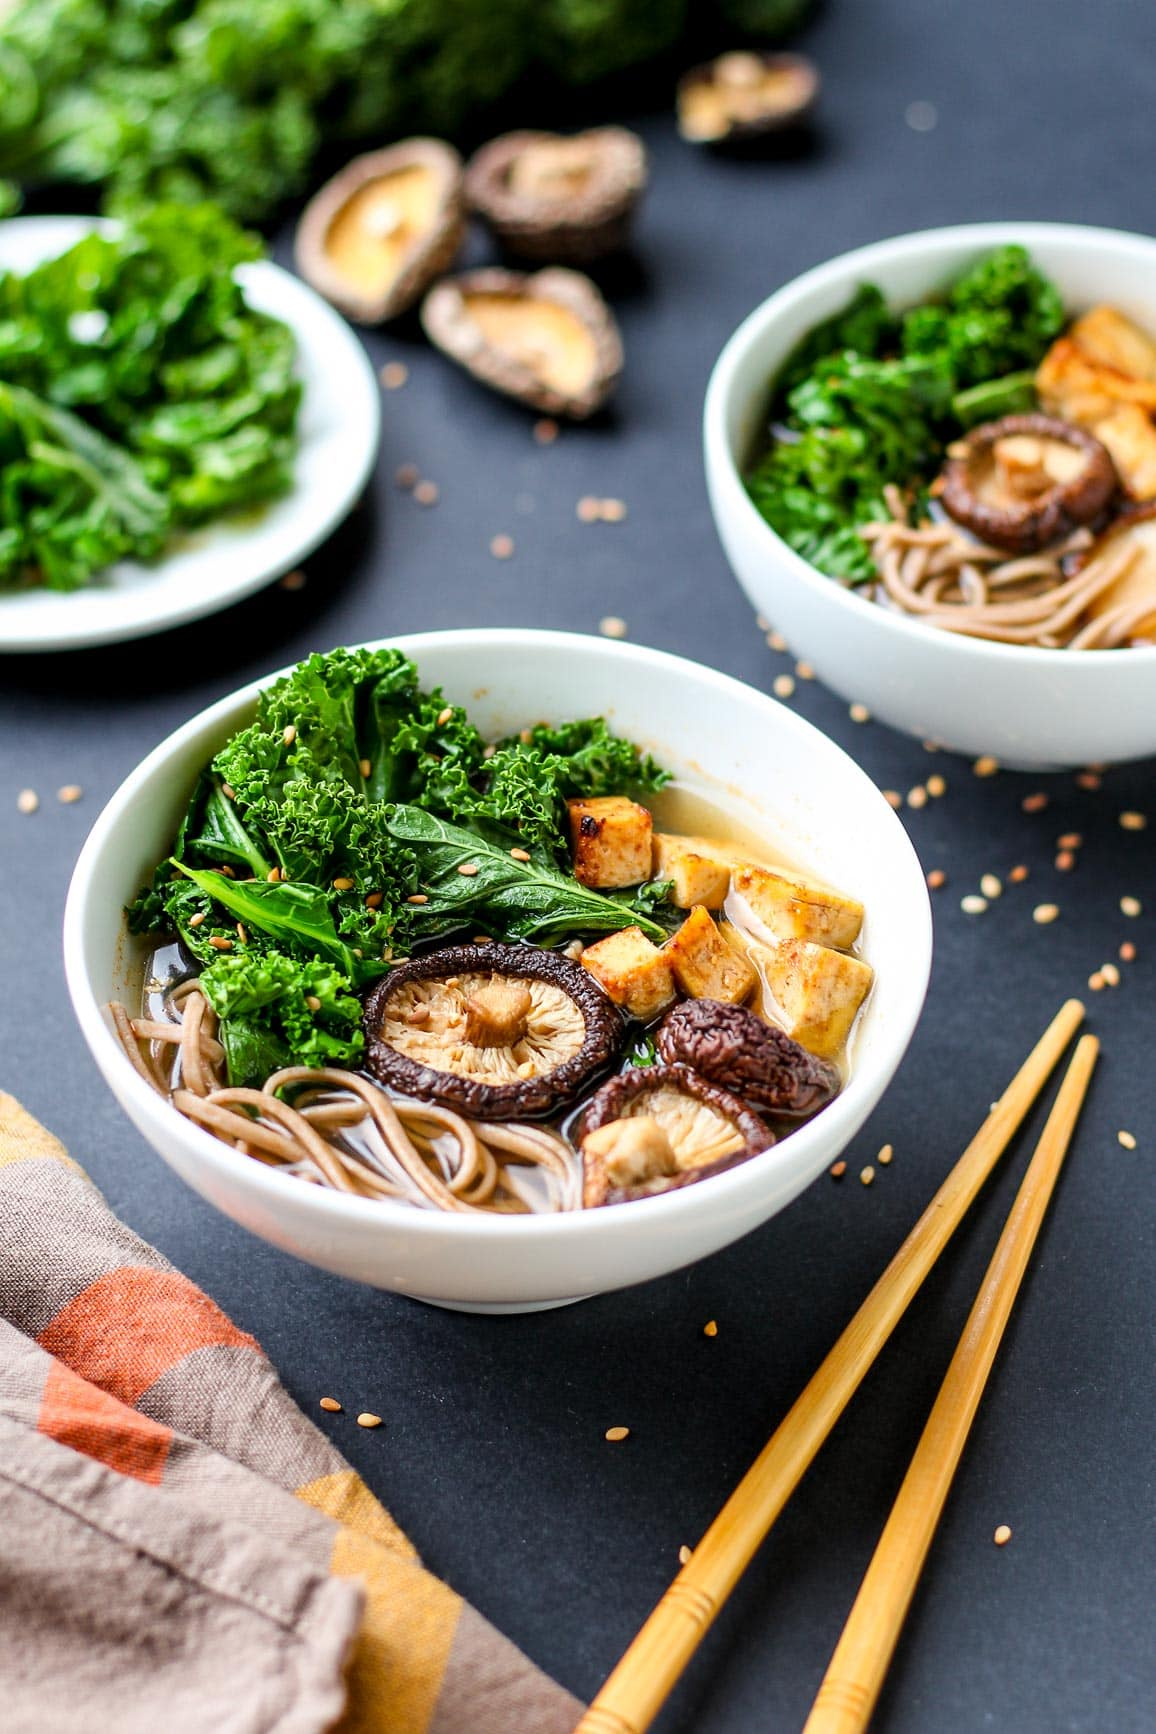 Lemongrass and Shiitake Soup with Kale and Tofu